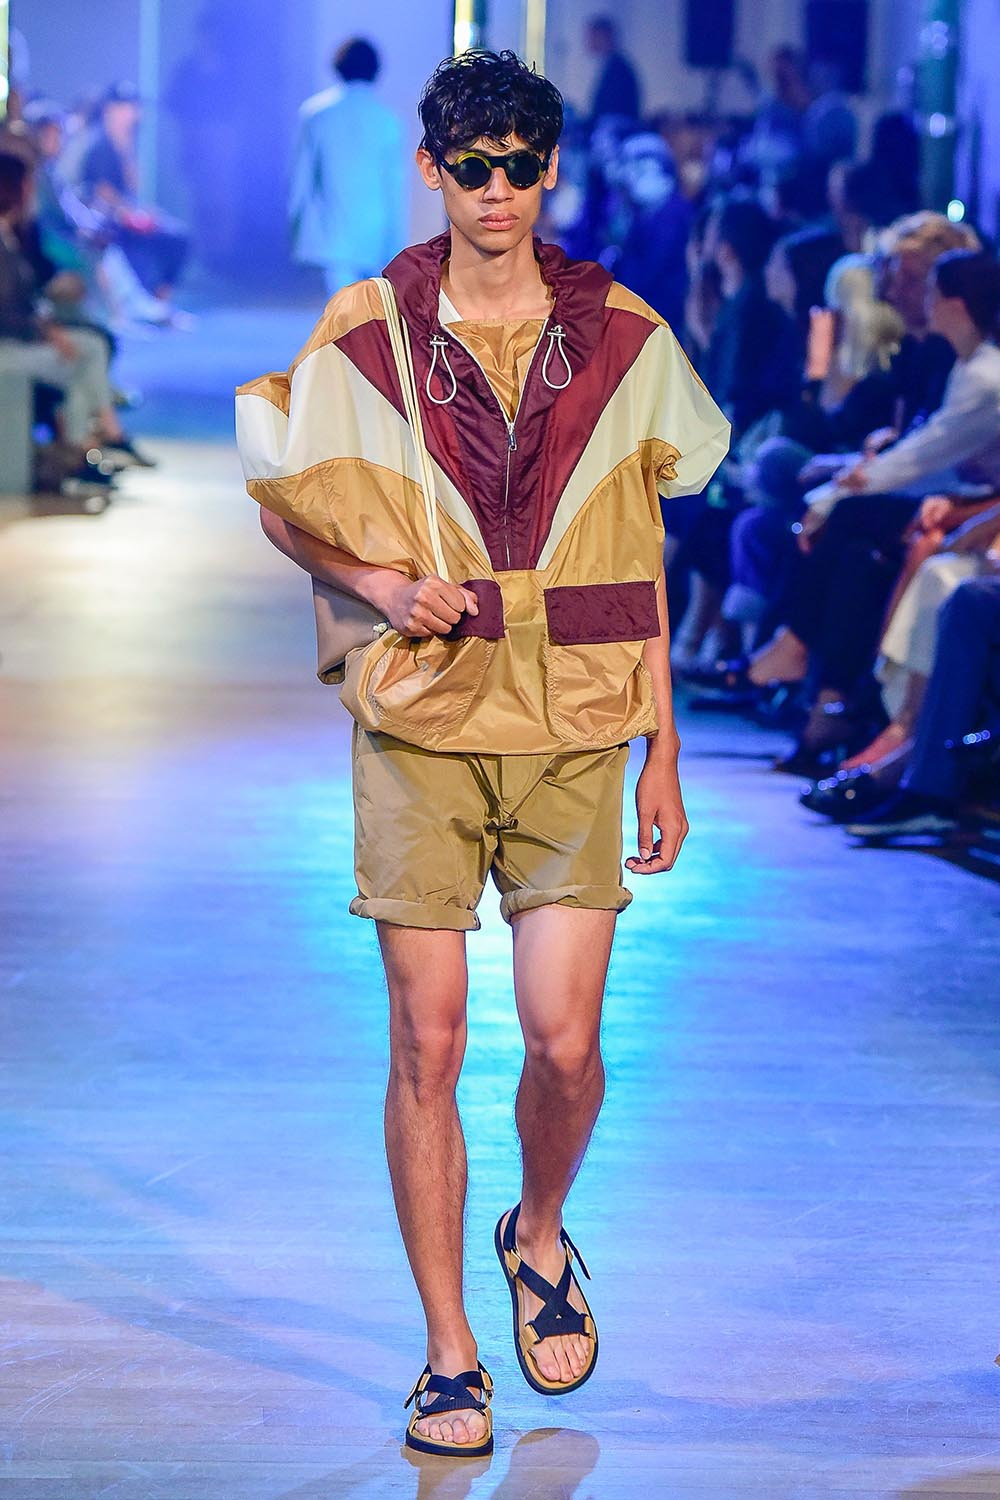 Cerruti 1881 Paris Fashion Week Men's SS19 - Sagaboi - Look 17